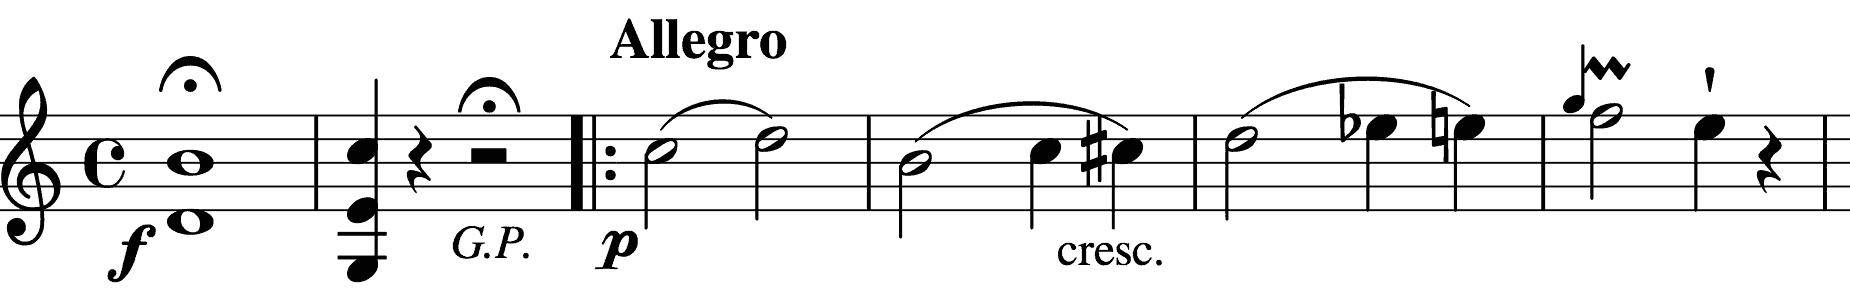 Op. 74 No.1 introduction